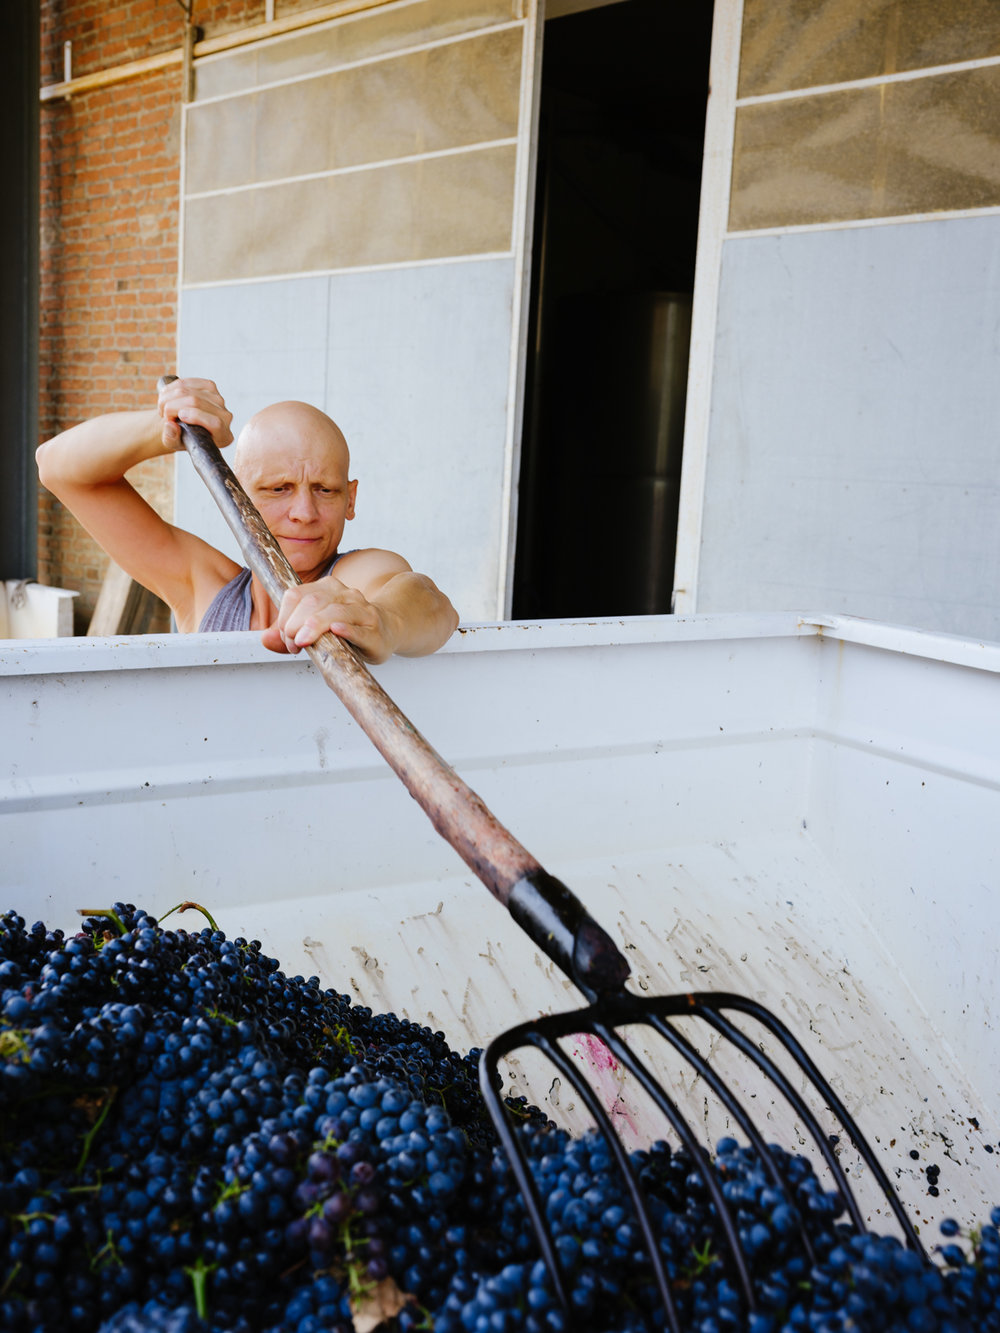 Unloading freshly picked grapes